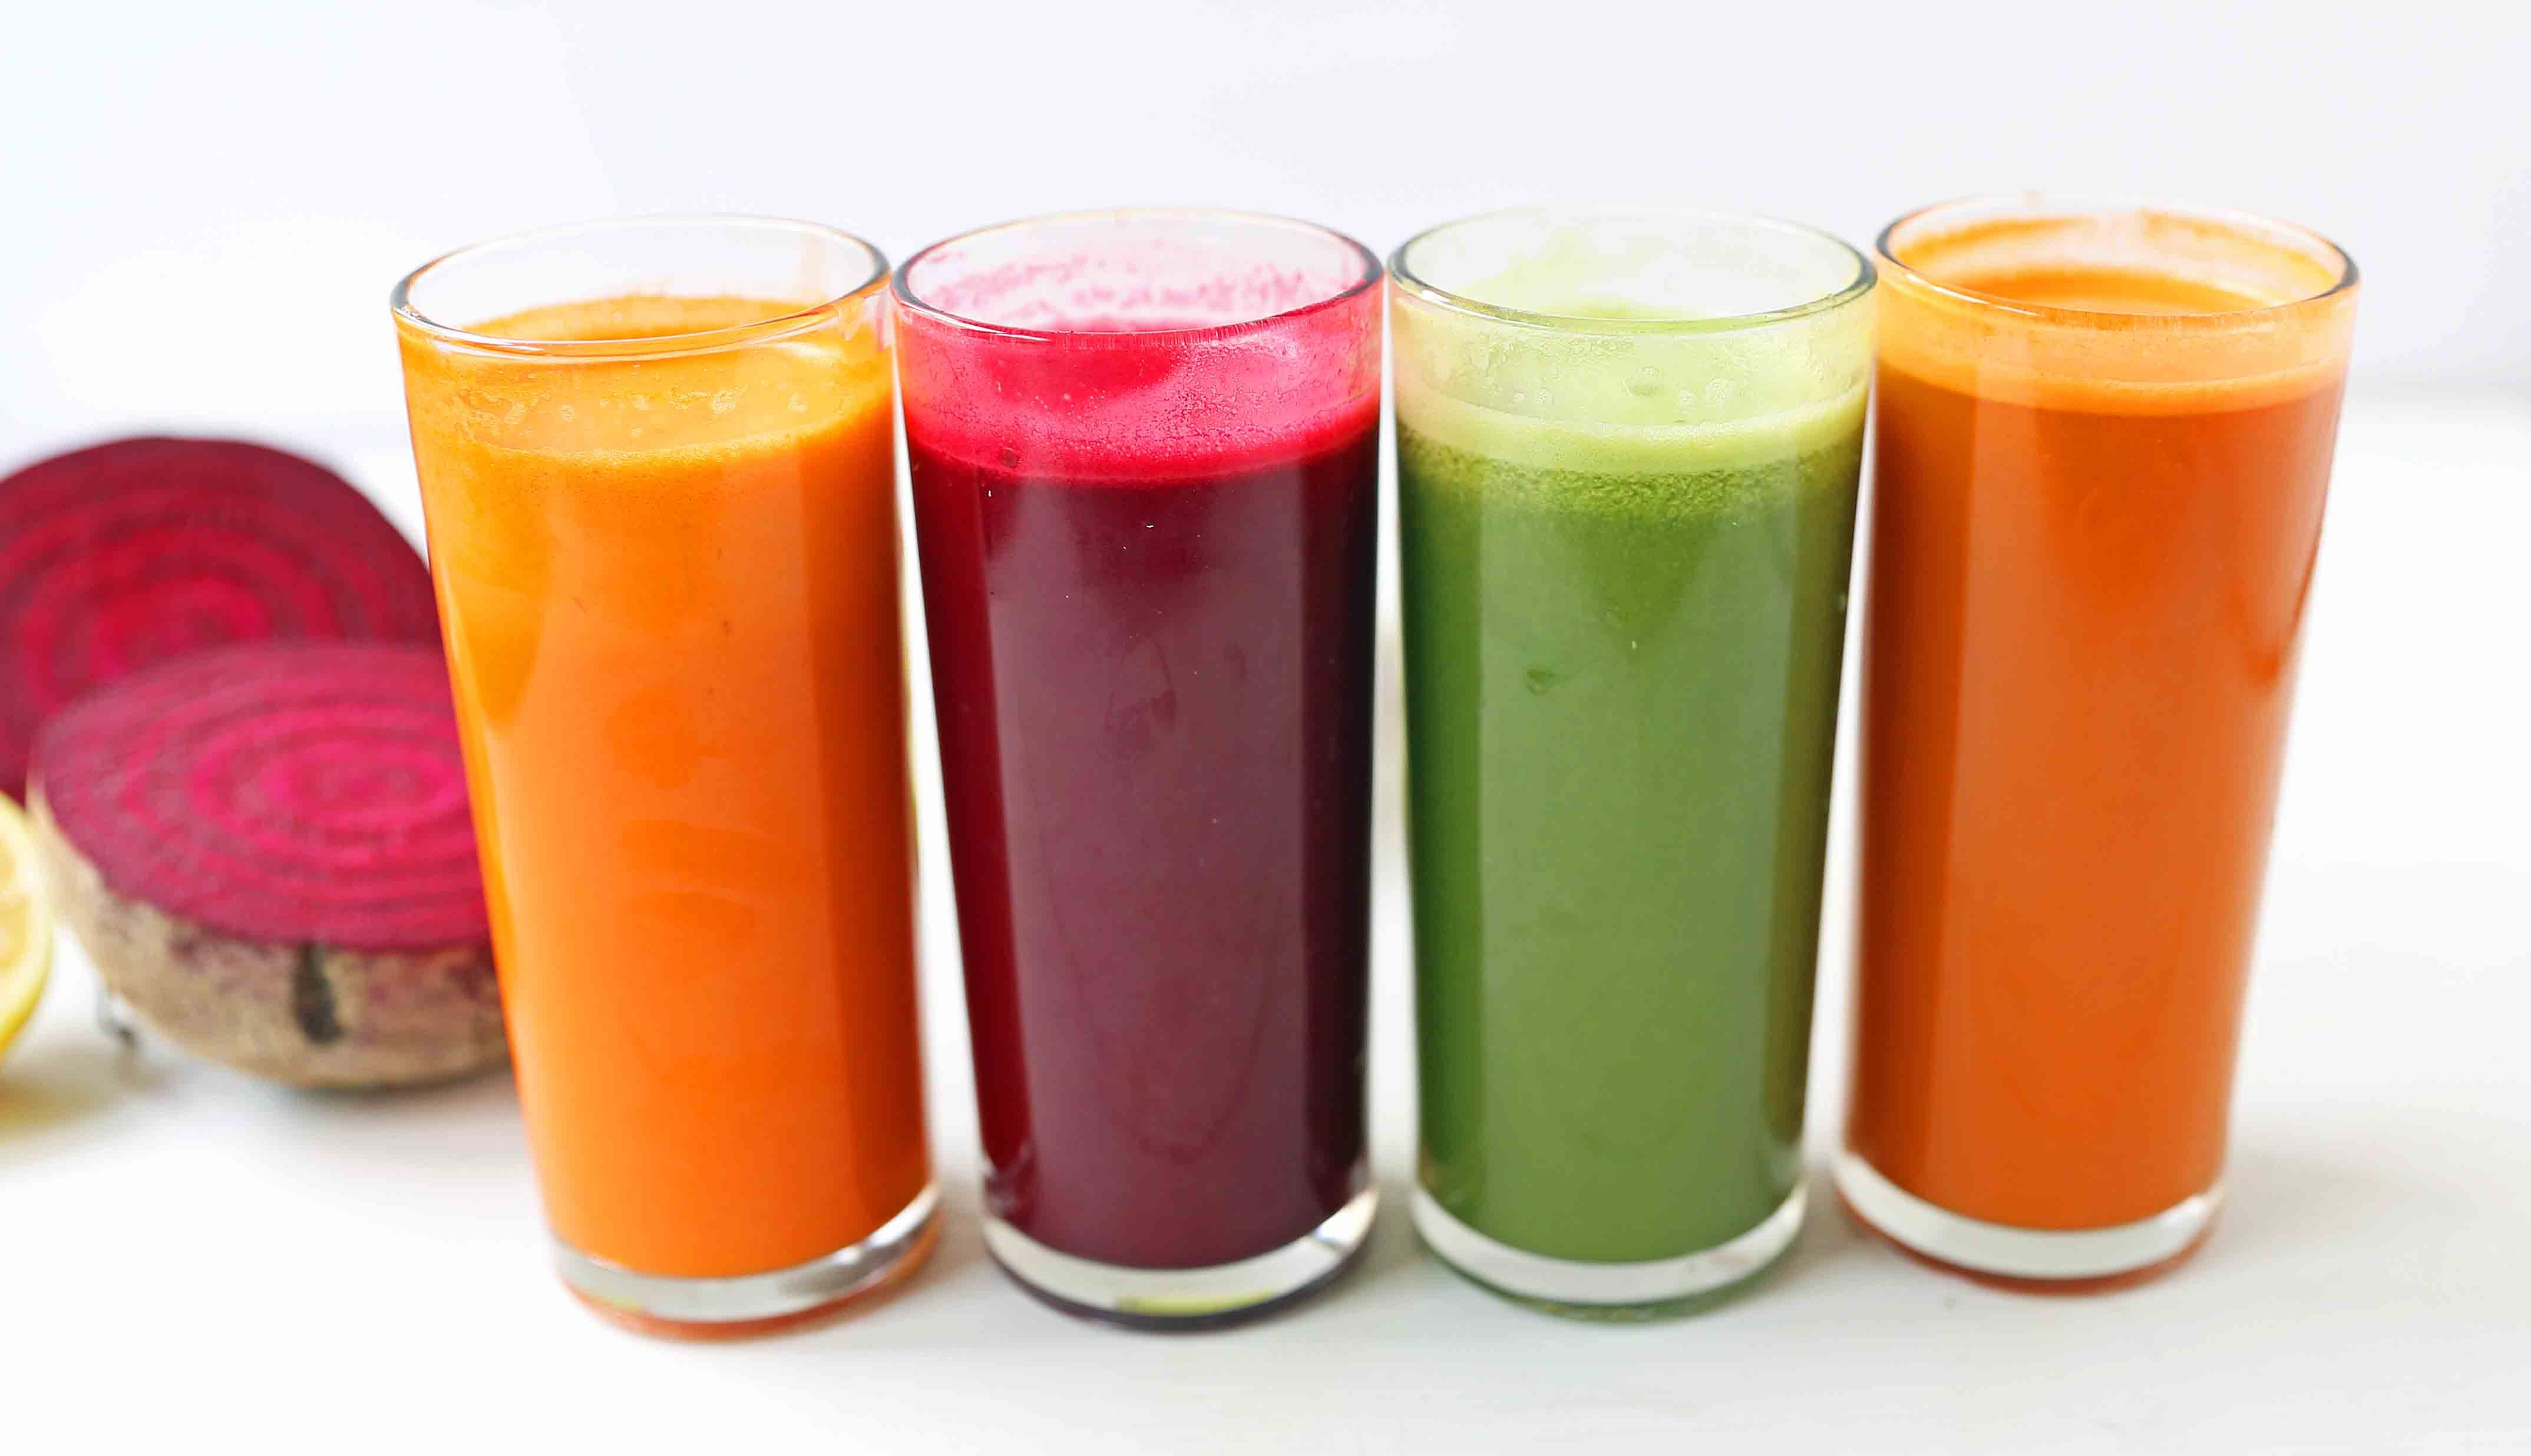 Healthy Juice Cleanse Recipes Four Health Fresh Fruit And